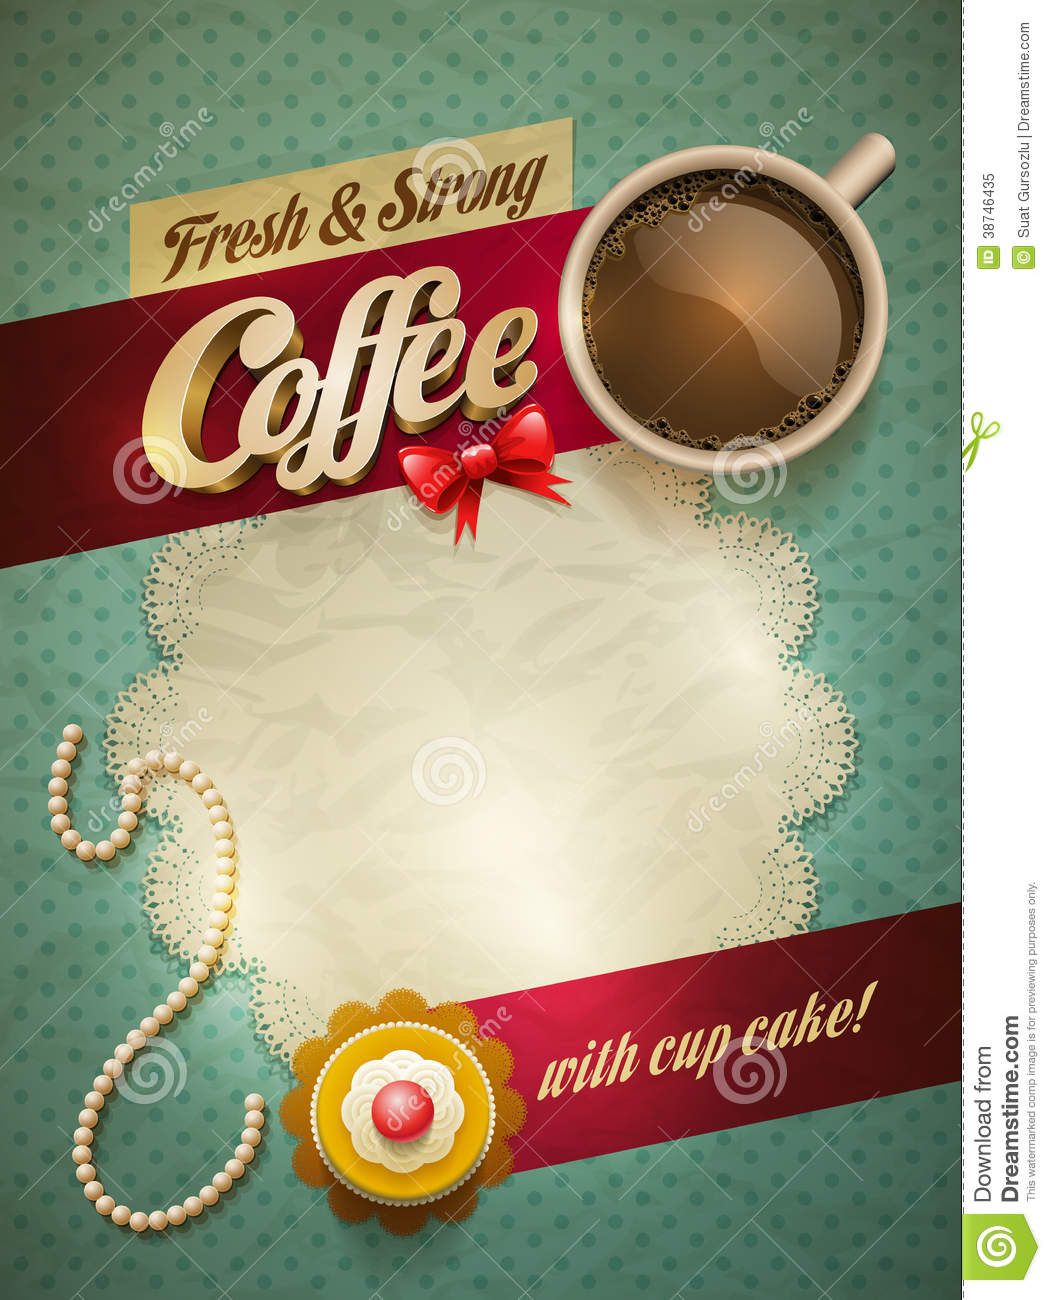 Coffee Amp Cake Poster Stock Vector Illustration Of